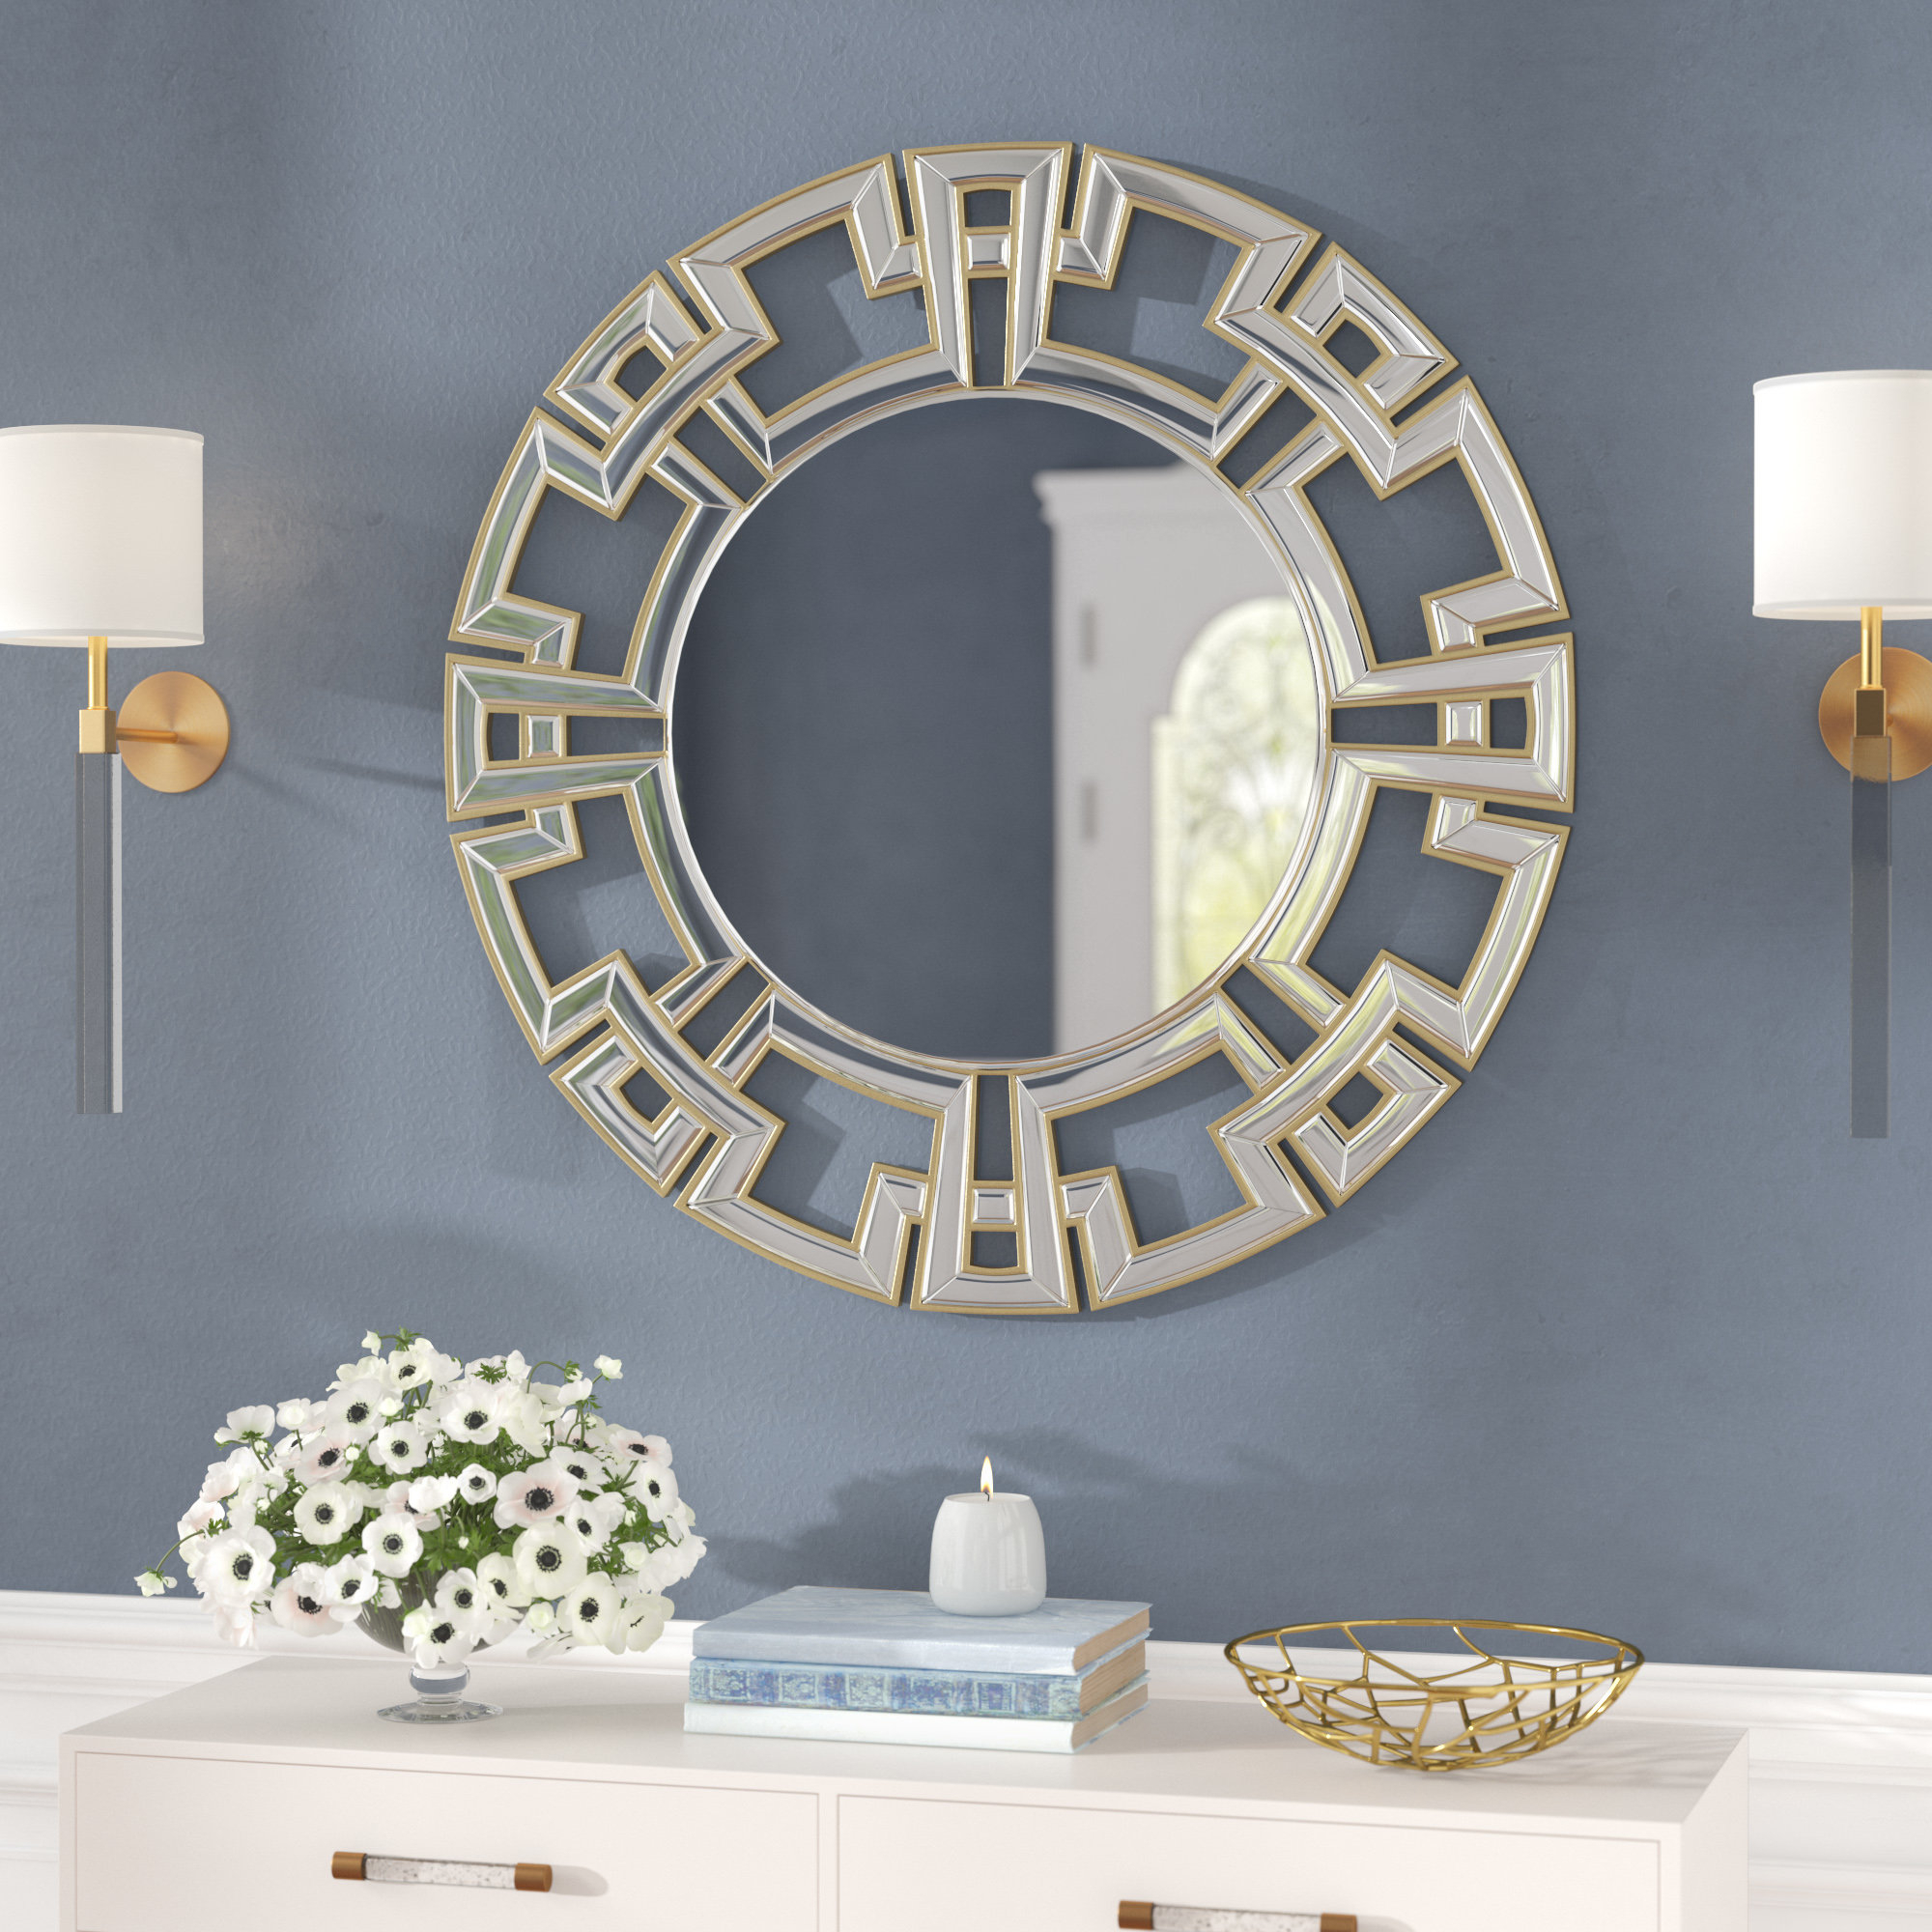 Tata Openwork Round Wall Mirror With Tata Openwork Round Wall Mirrors (Image 15 of 20)